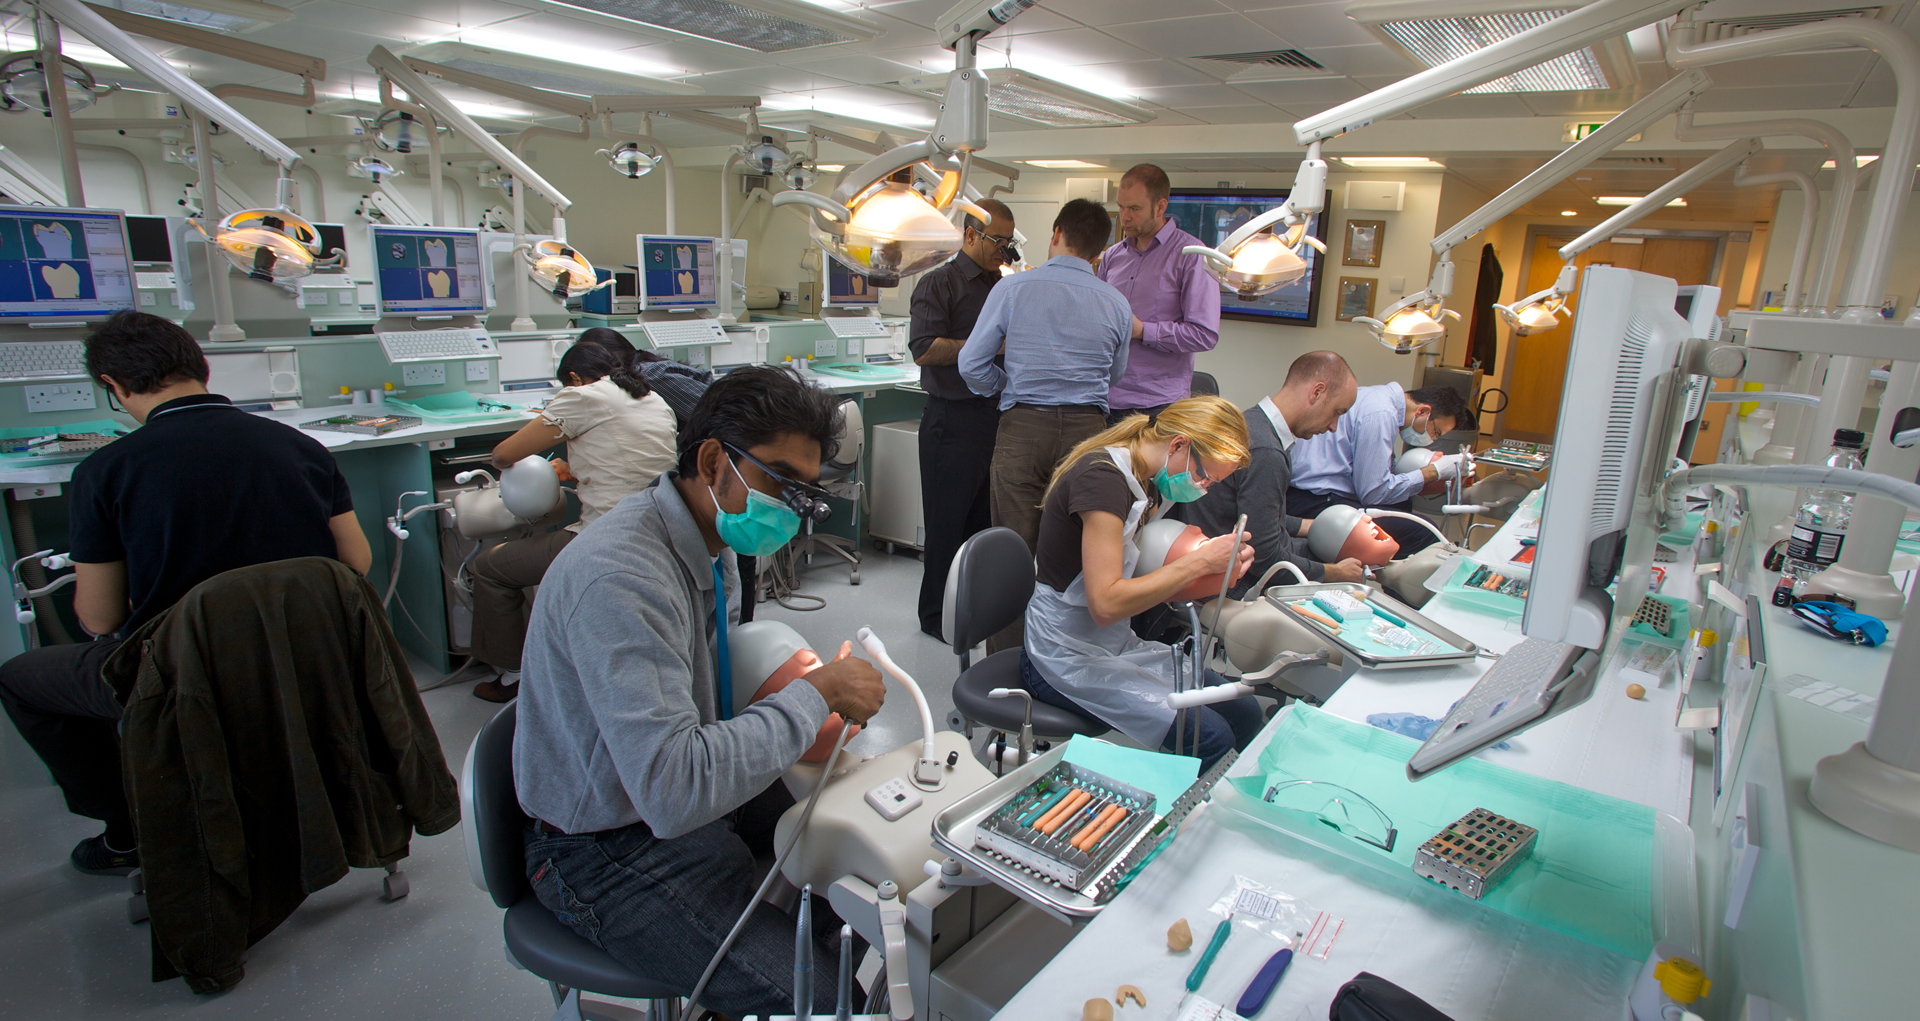 Dental Courses in London with LonDEC